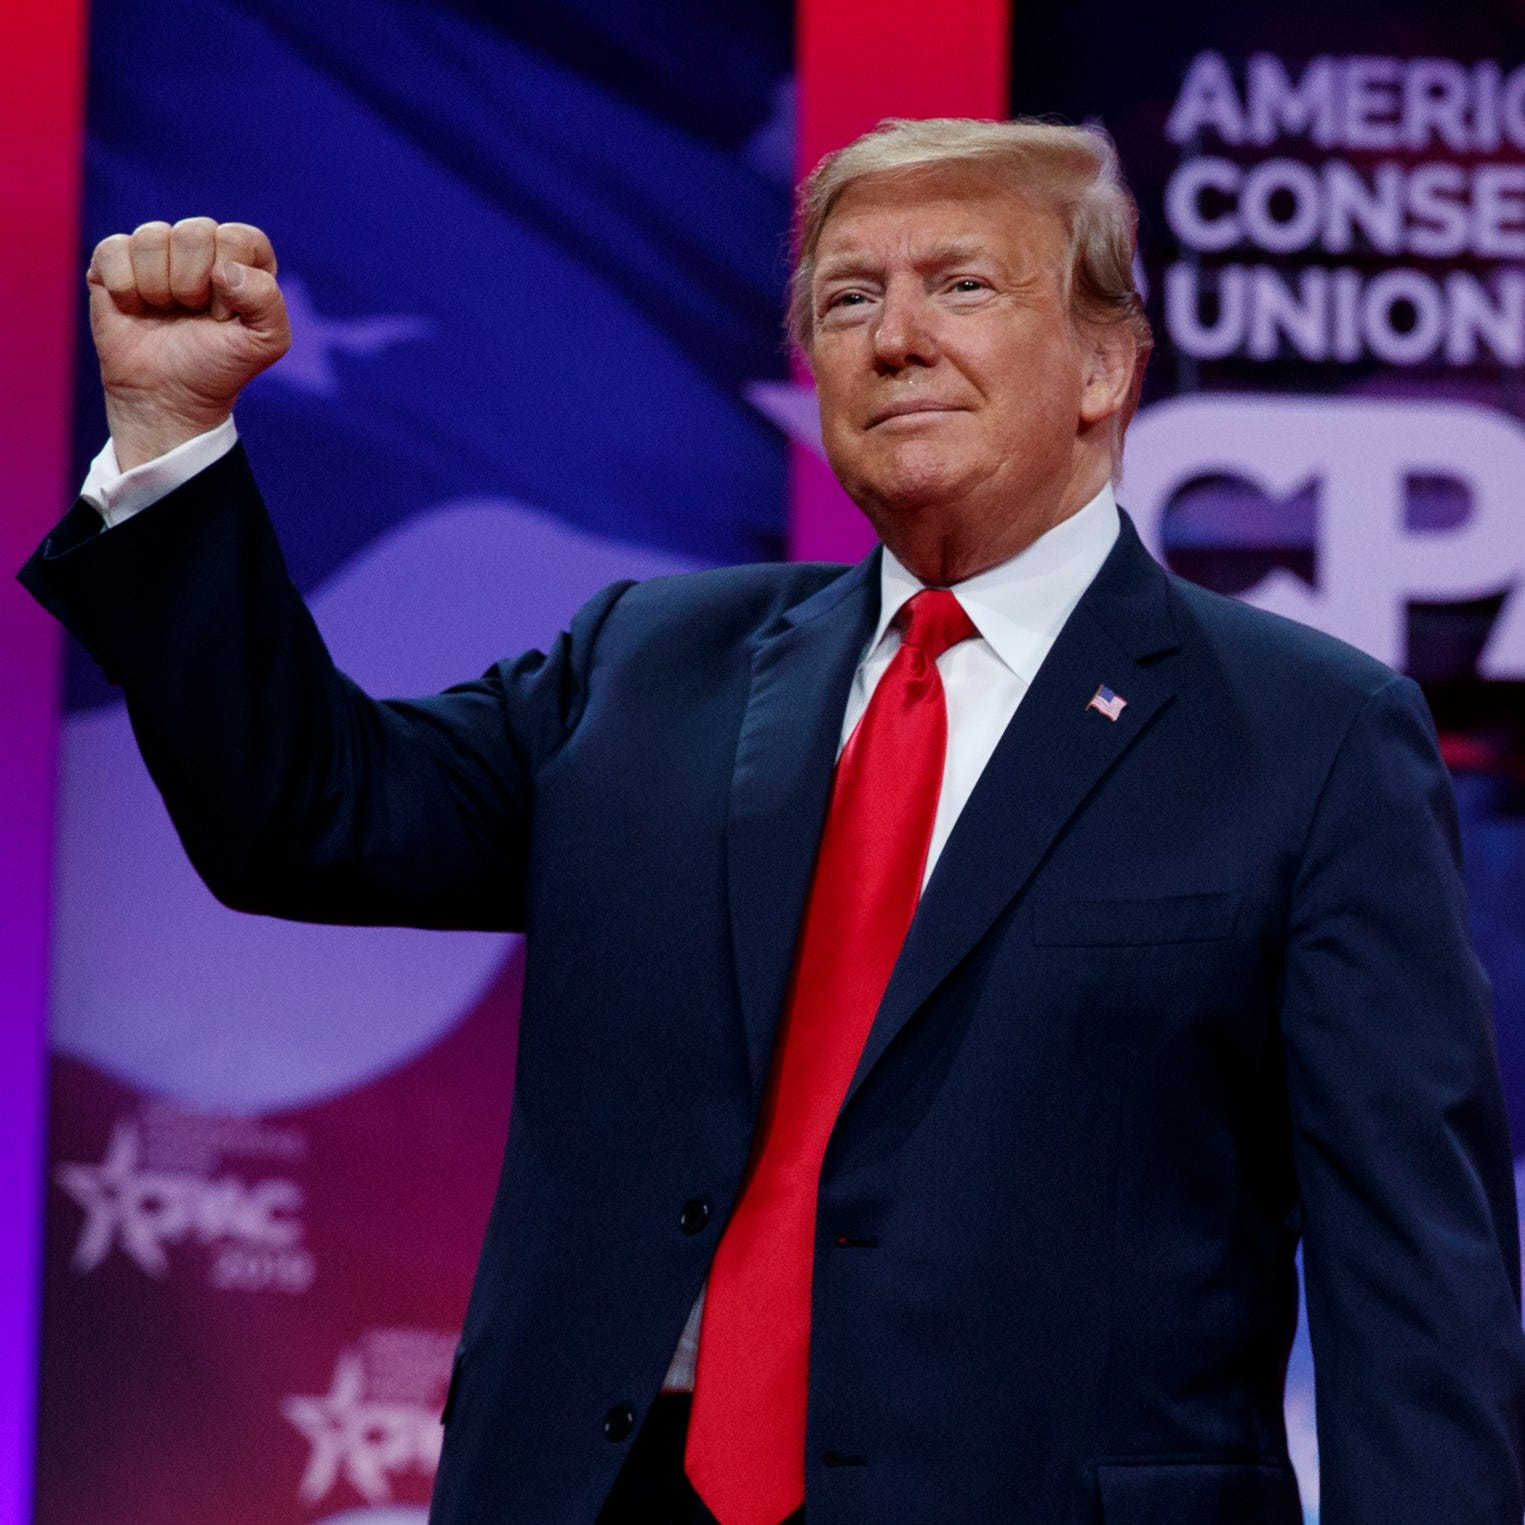 President Donald Trump gestures to the cheering audience as he arrives to speak at Conservative Political Action Conference, CPAC 2019, in Oxon Hill, Maryland, March 2, 2019.